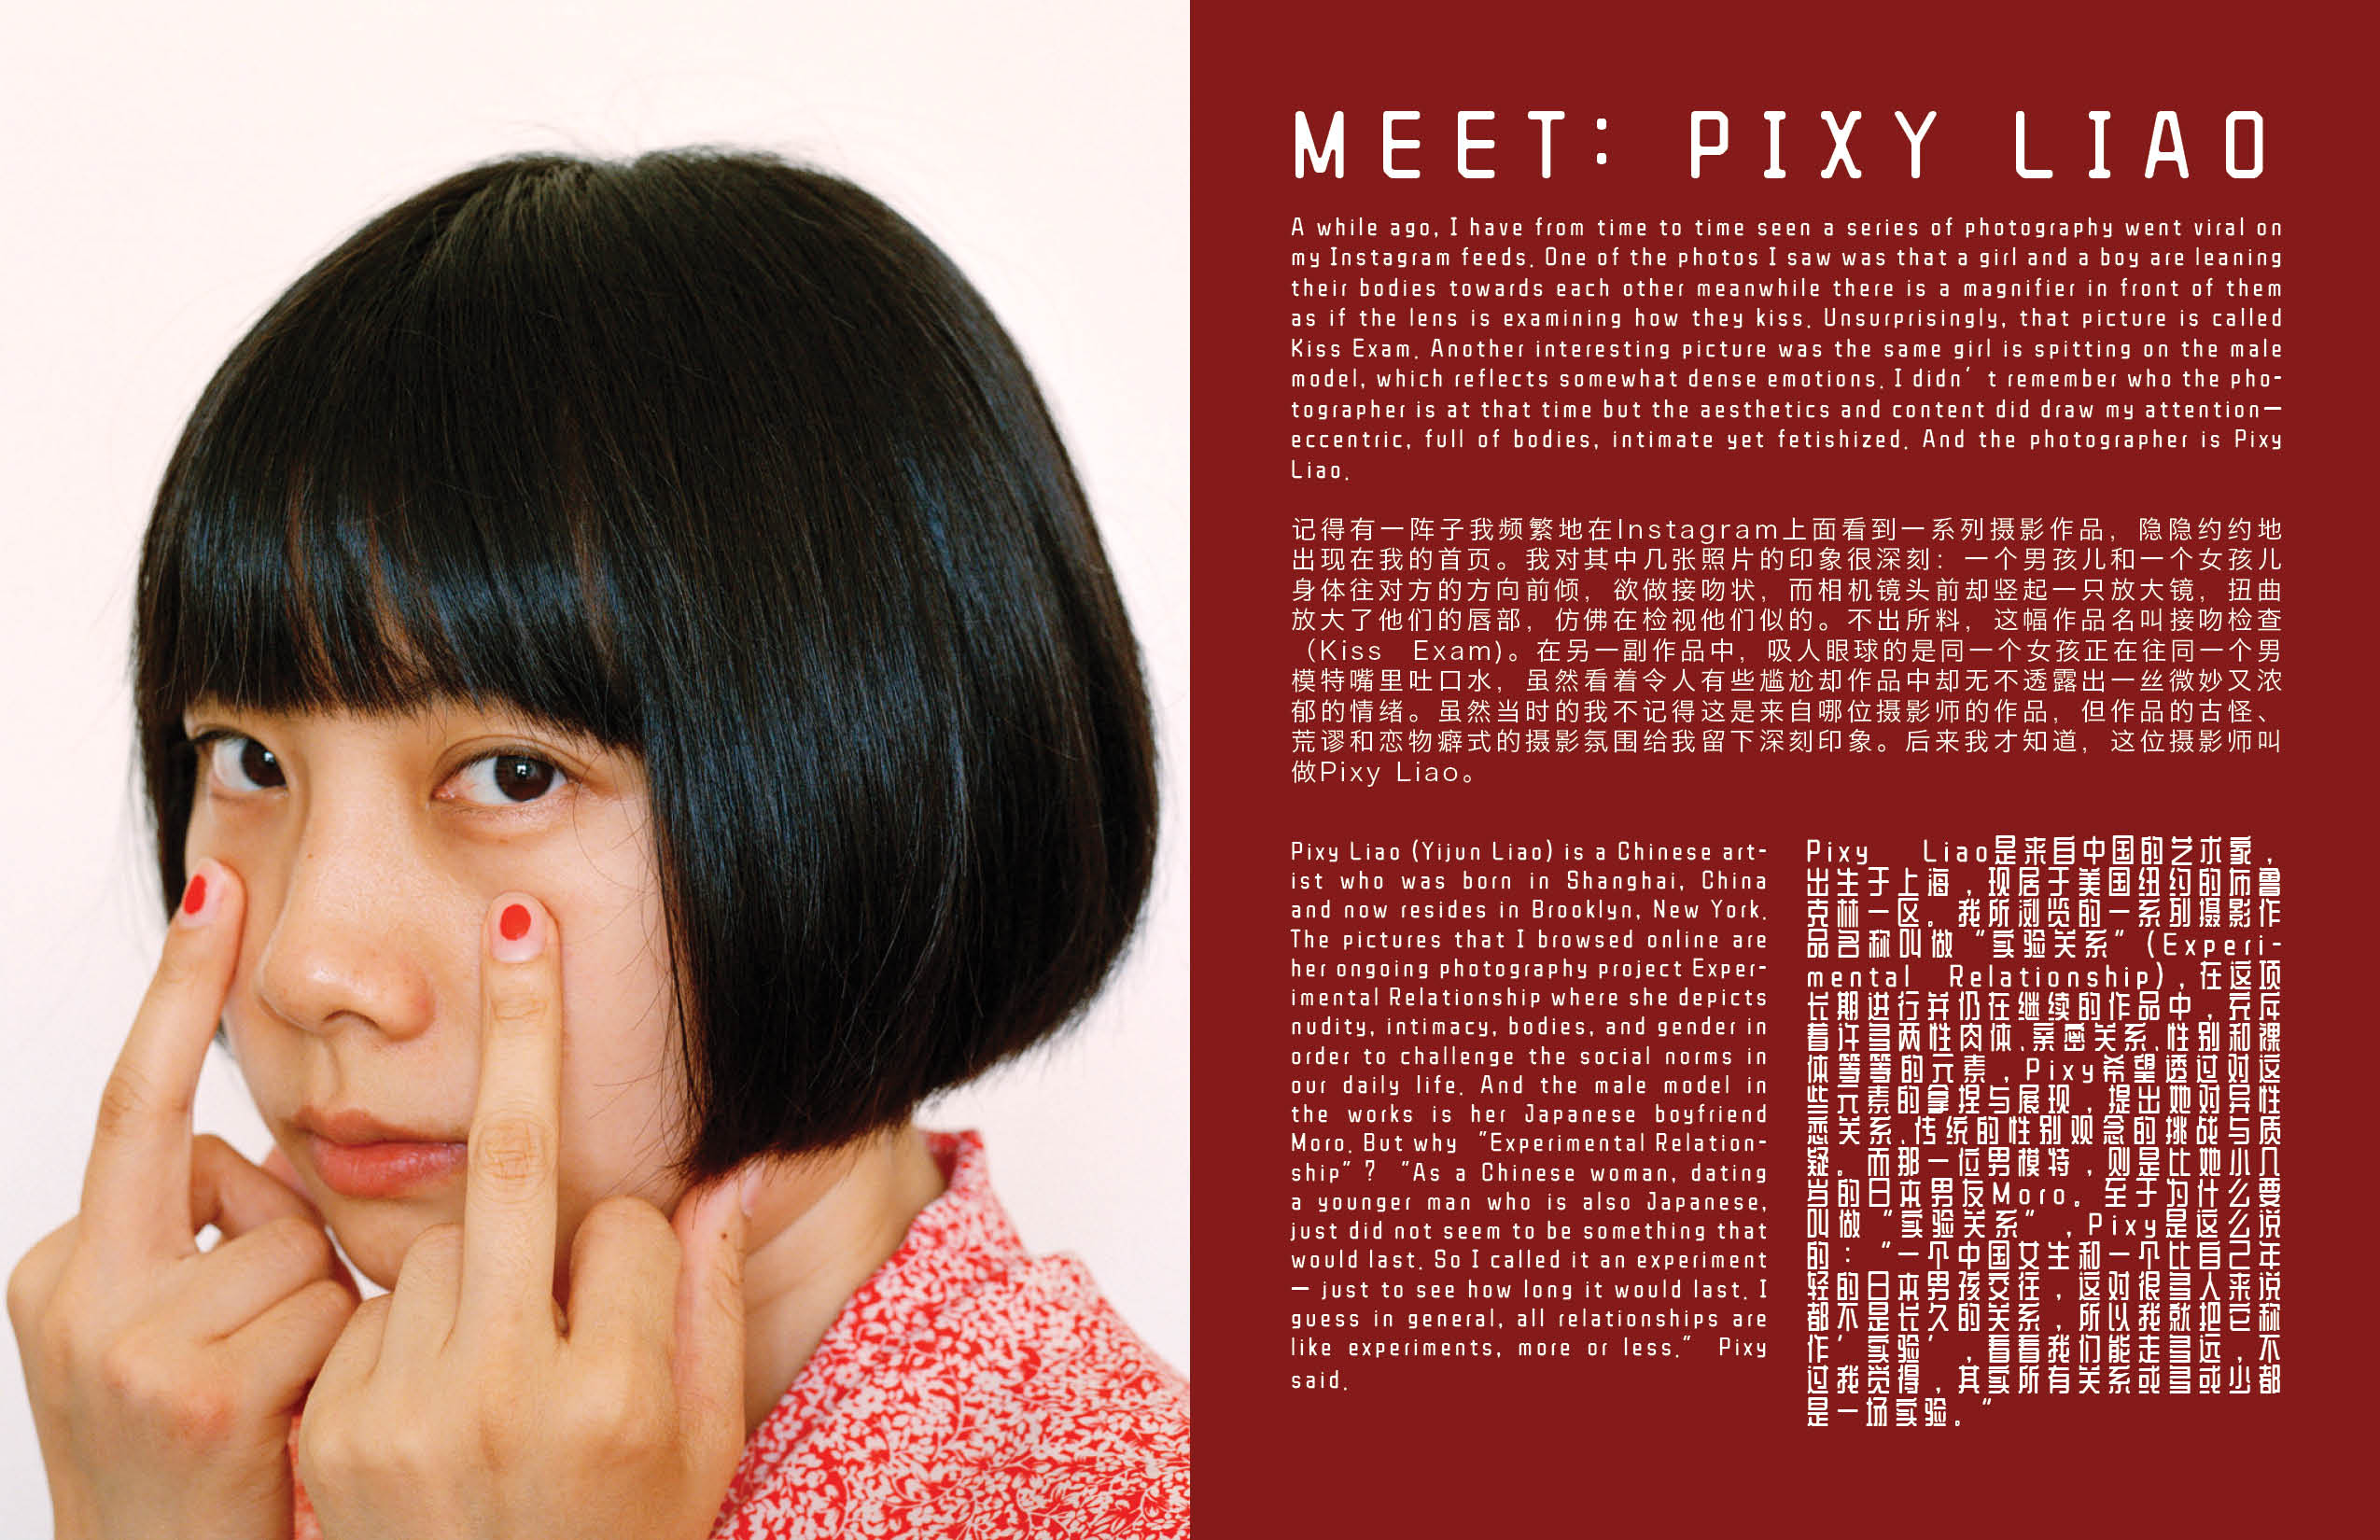 photos by pixyliao and text by Frida chen